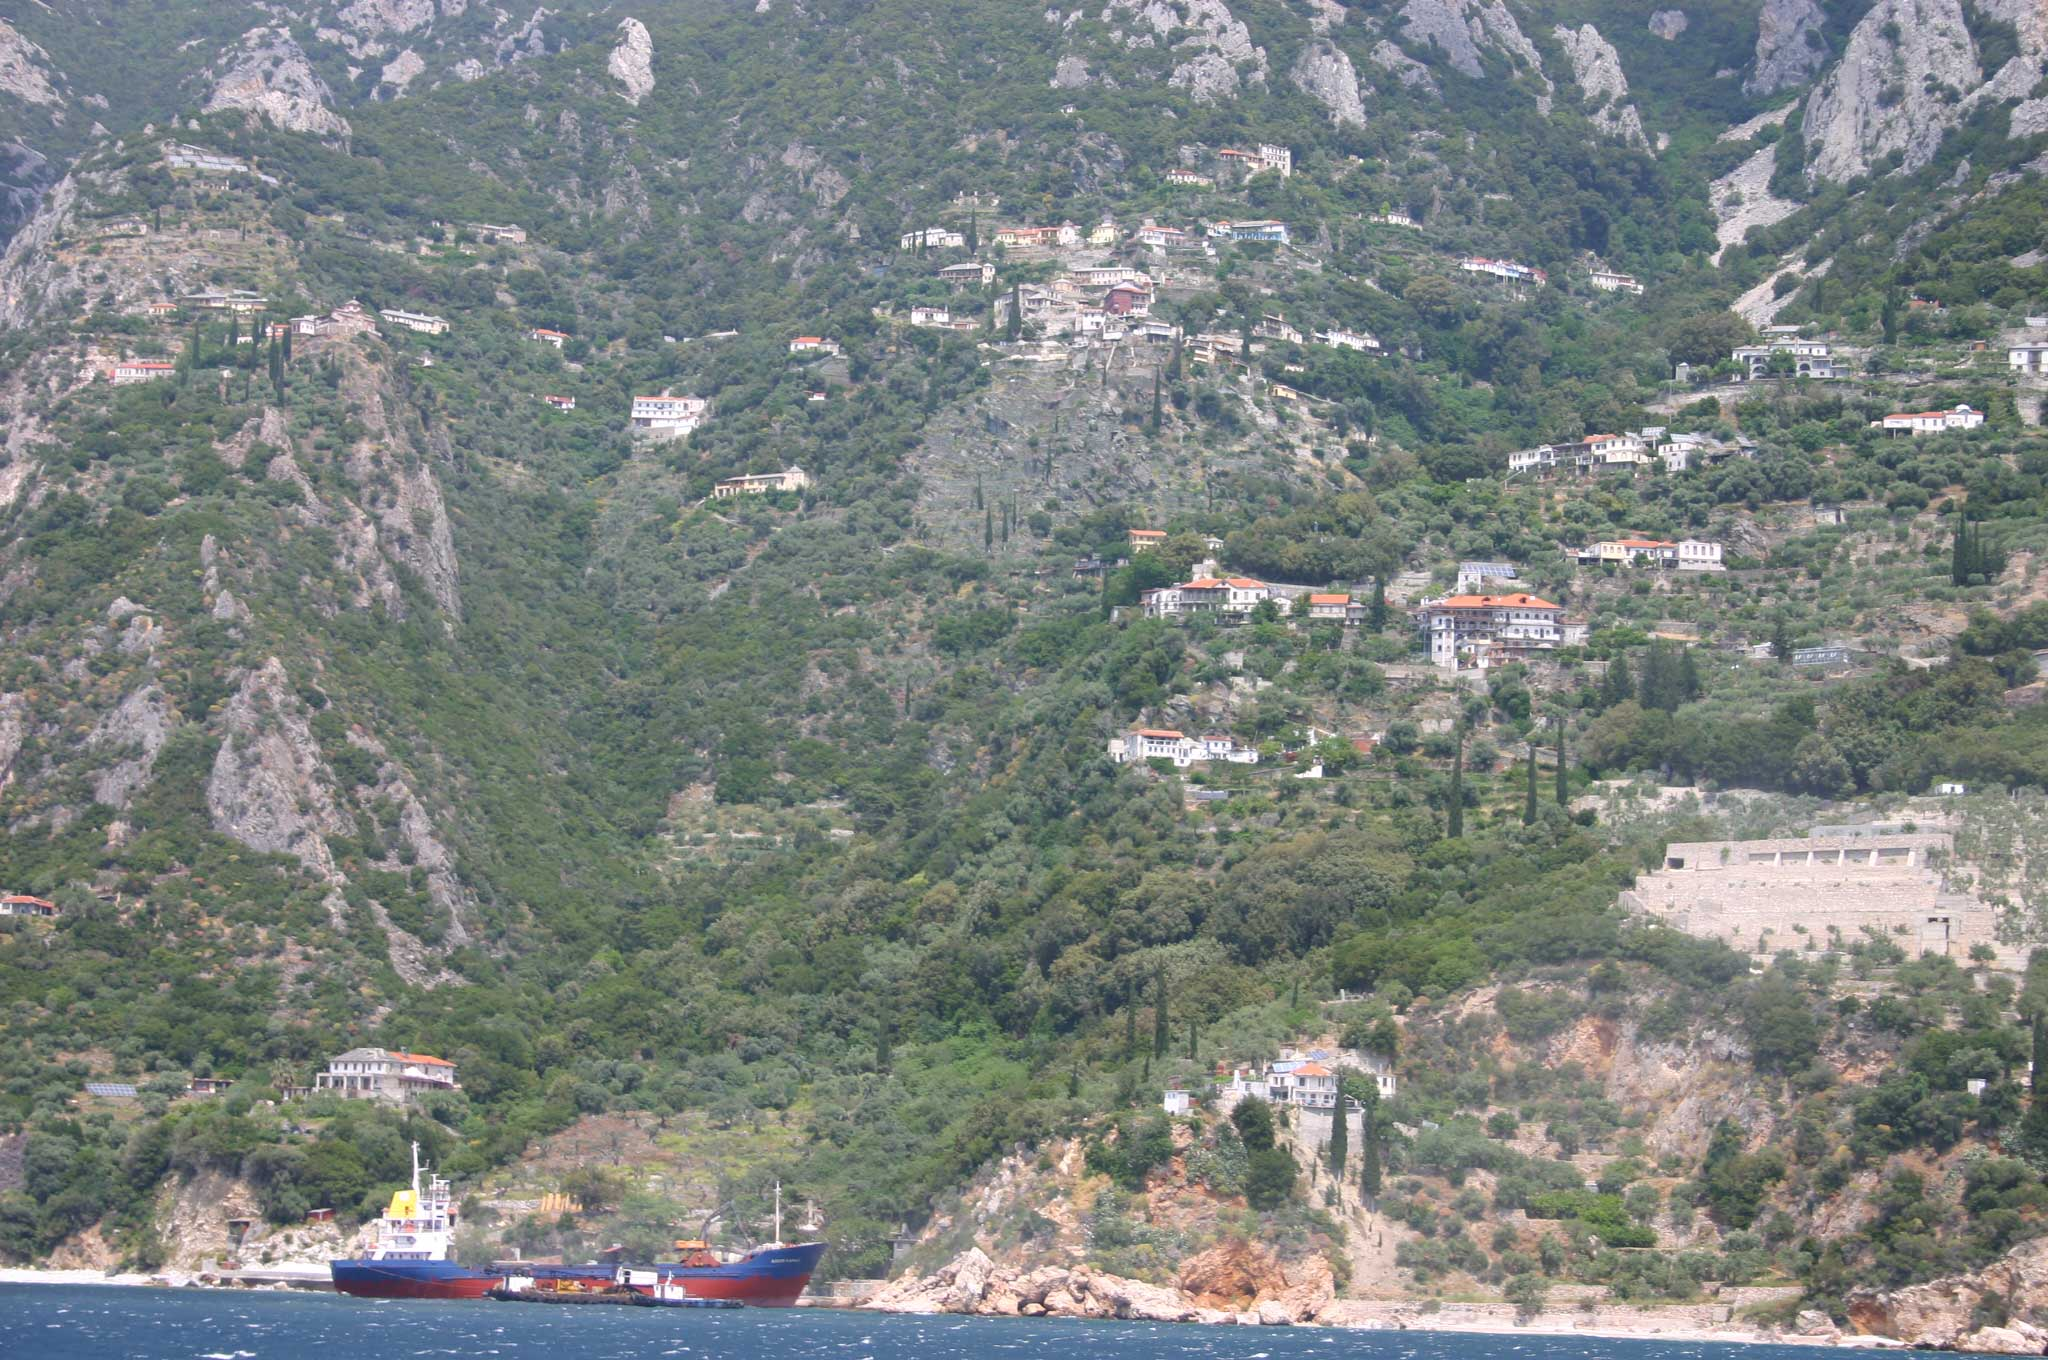 Mount Athos: Mt Athos - South Coast From the Ferry - © William Mackesy